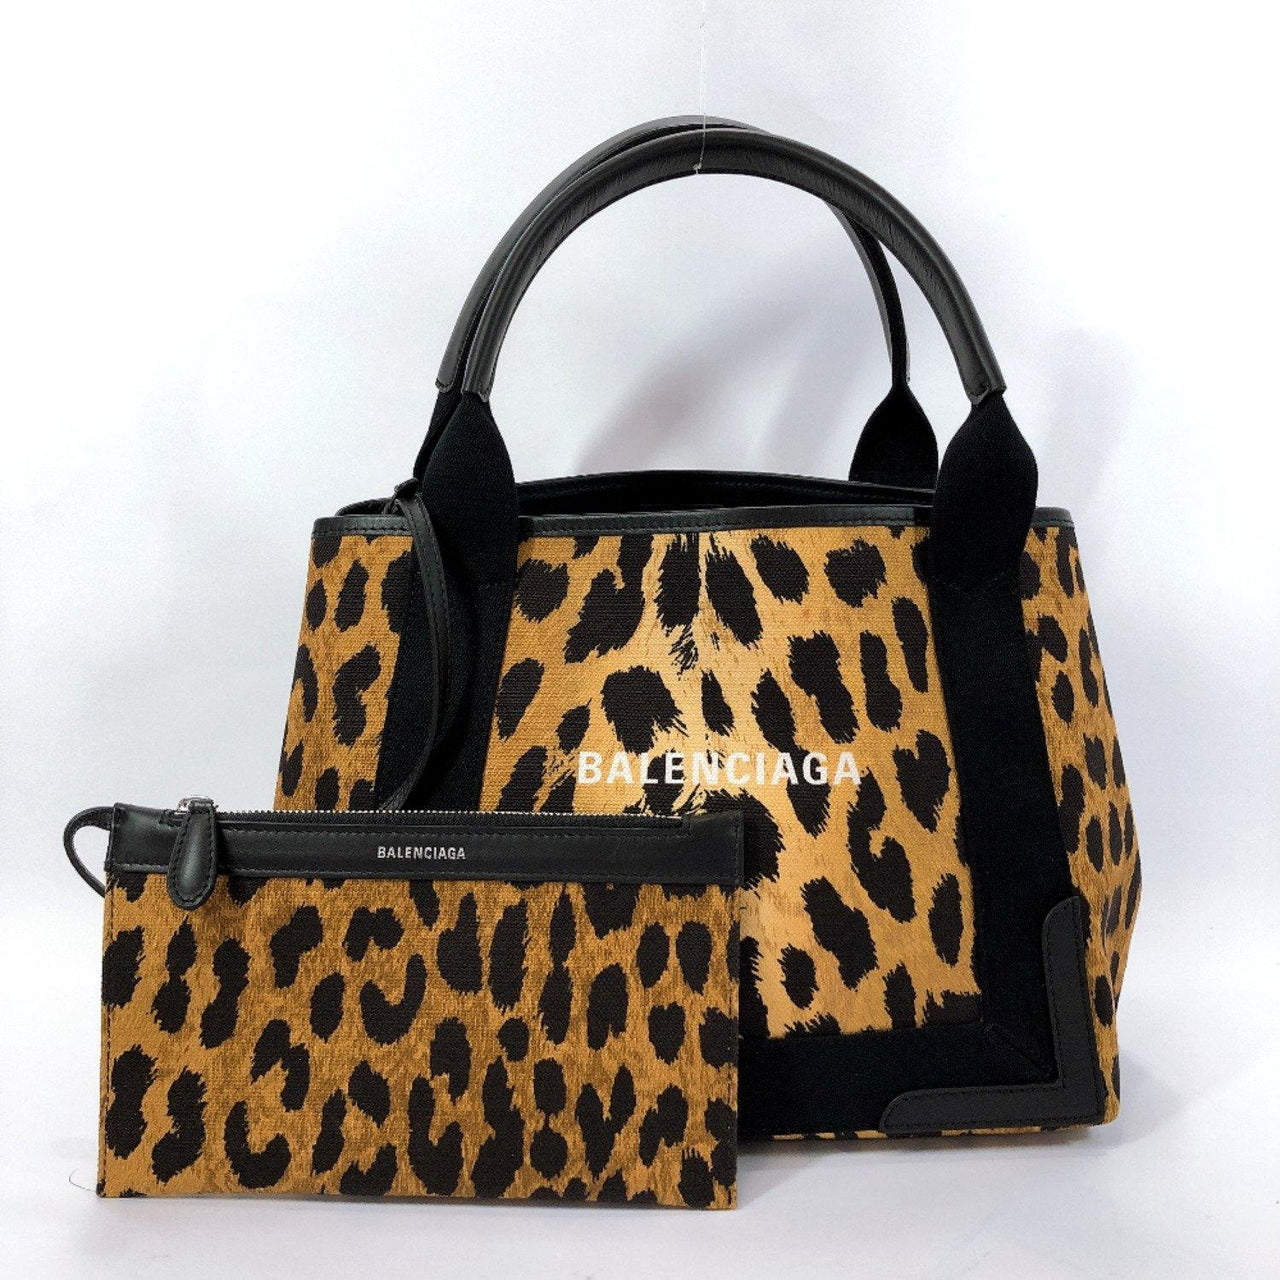 BALENCIAGA Handbag 339933 Navy kabas S Leopard canvas/leather Brown black Women Used - JP-BRANDS.com